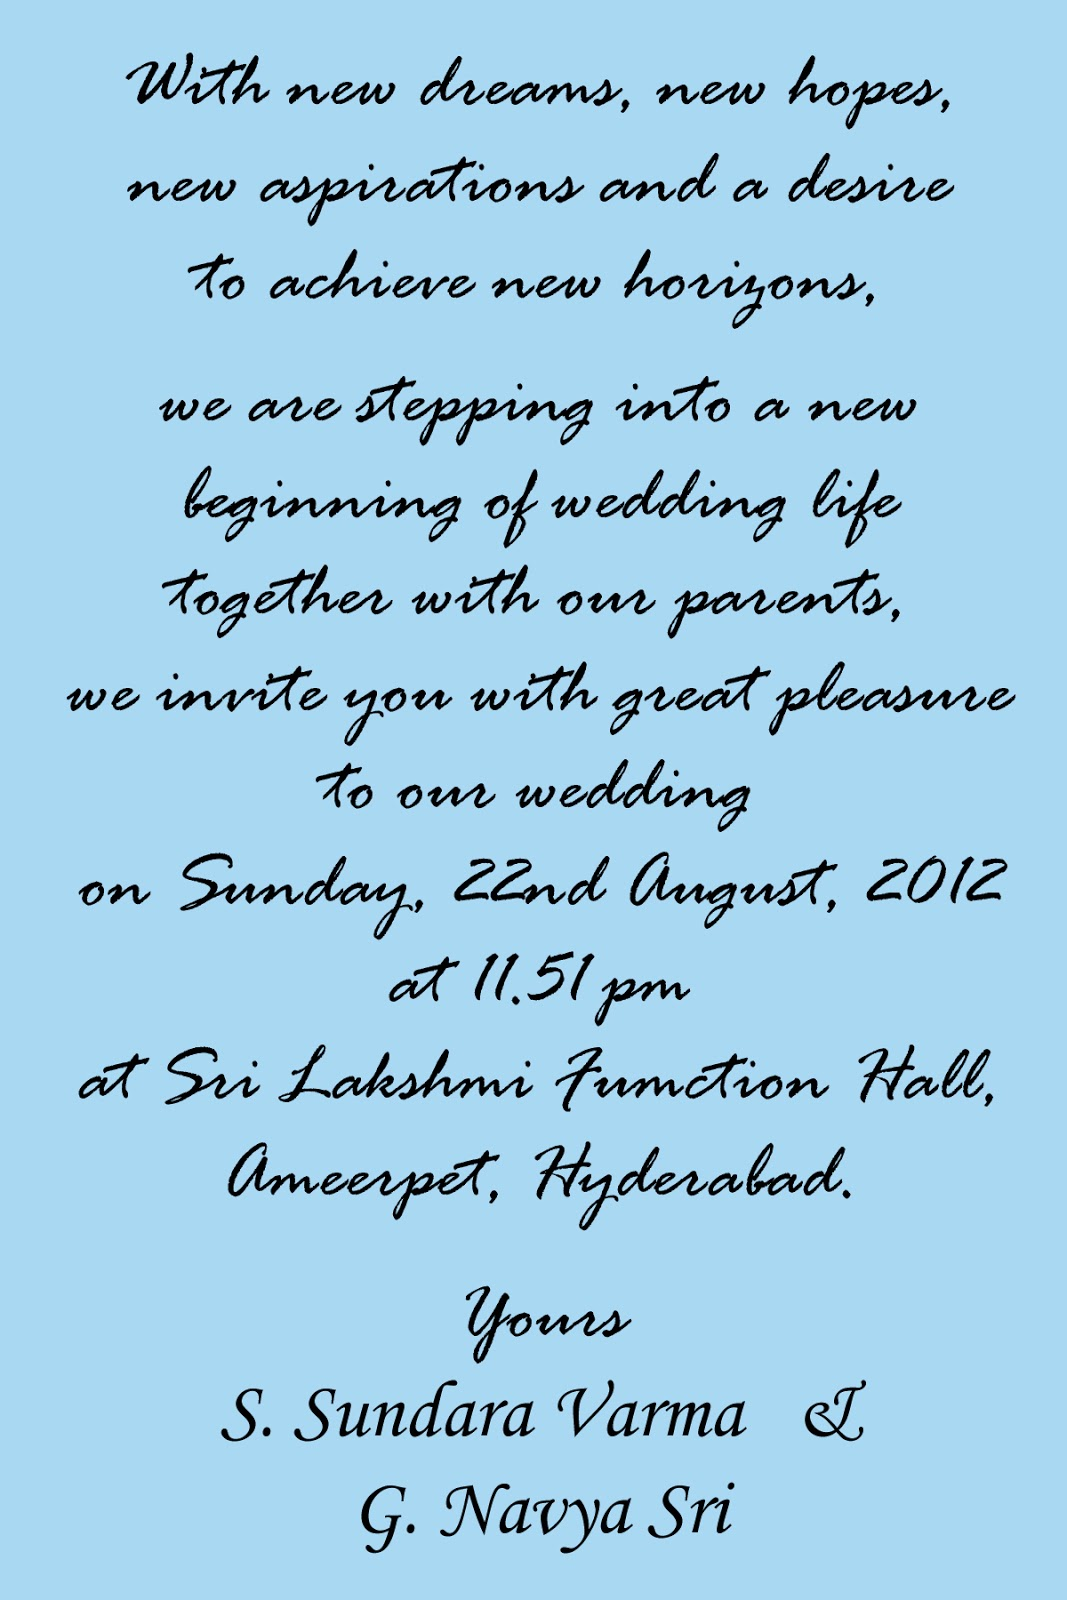 Indian Wedding Reception Invitation Quotes For Friends